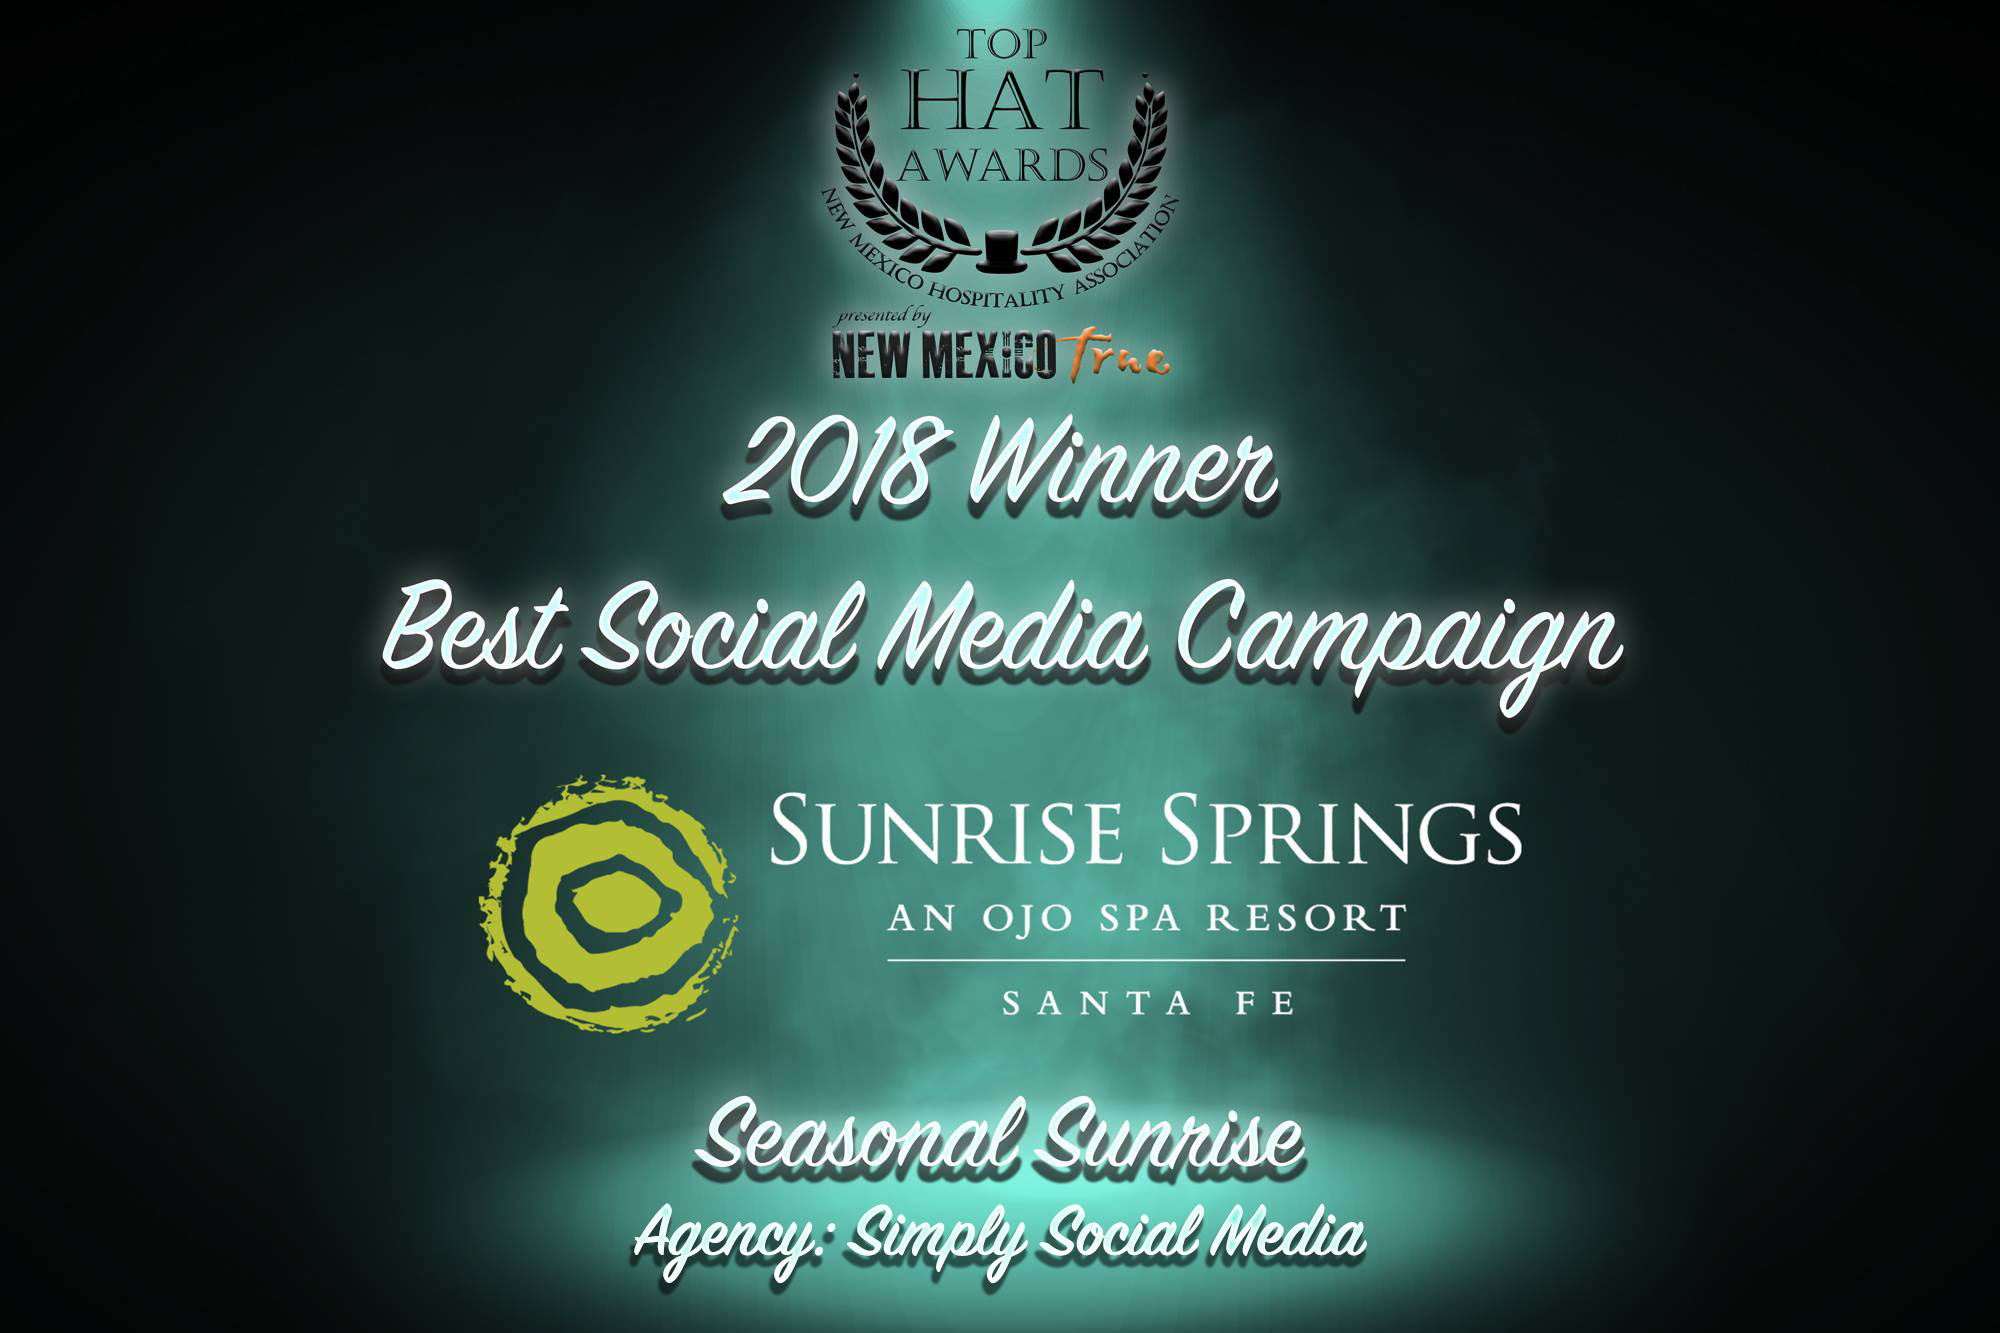 2018 Top Hat Awards Best Social Media Campaign Santa Fe Sunrise Springs Influencer Marketing.jpg